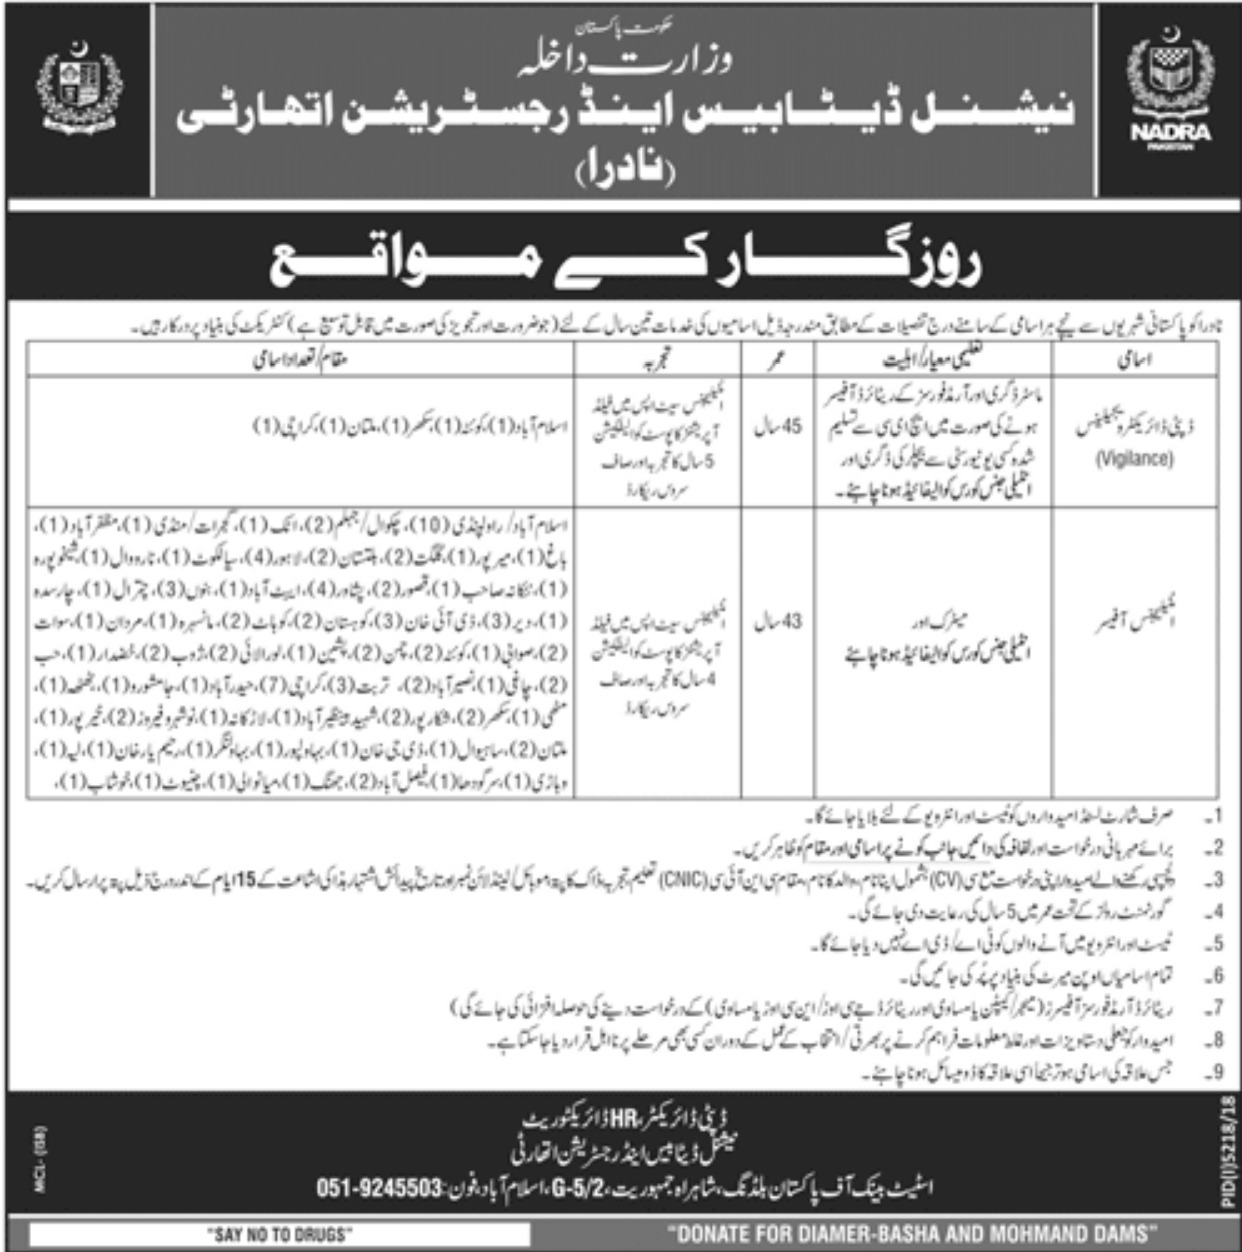 NADRA Jobs 2019 Latest New Vacancies in Pakistan